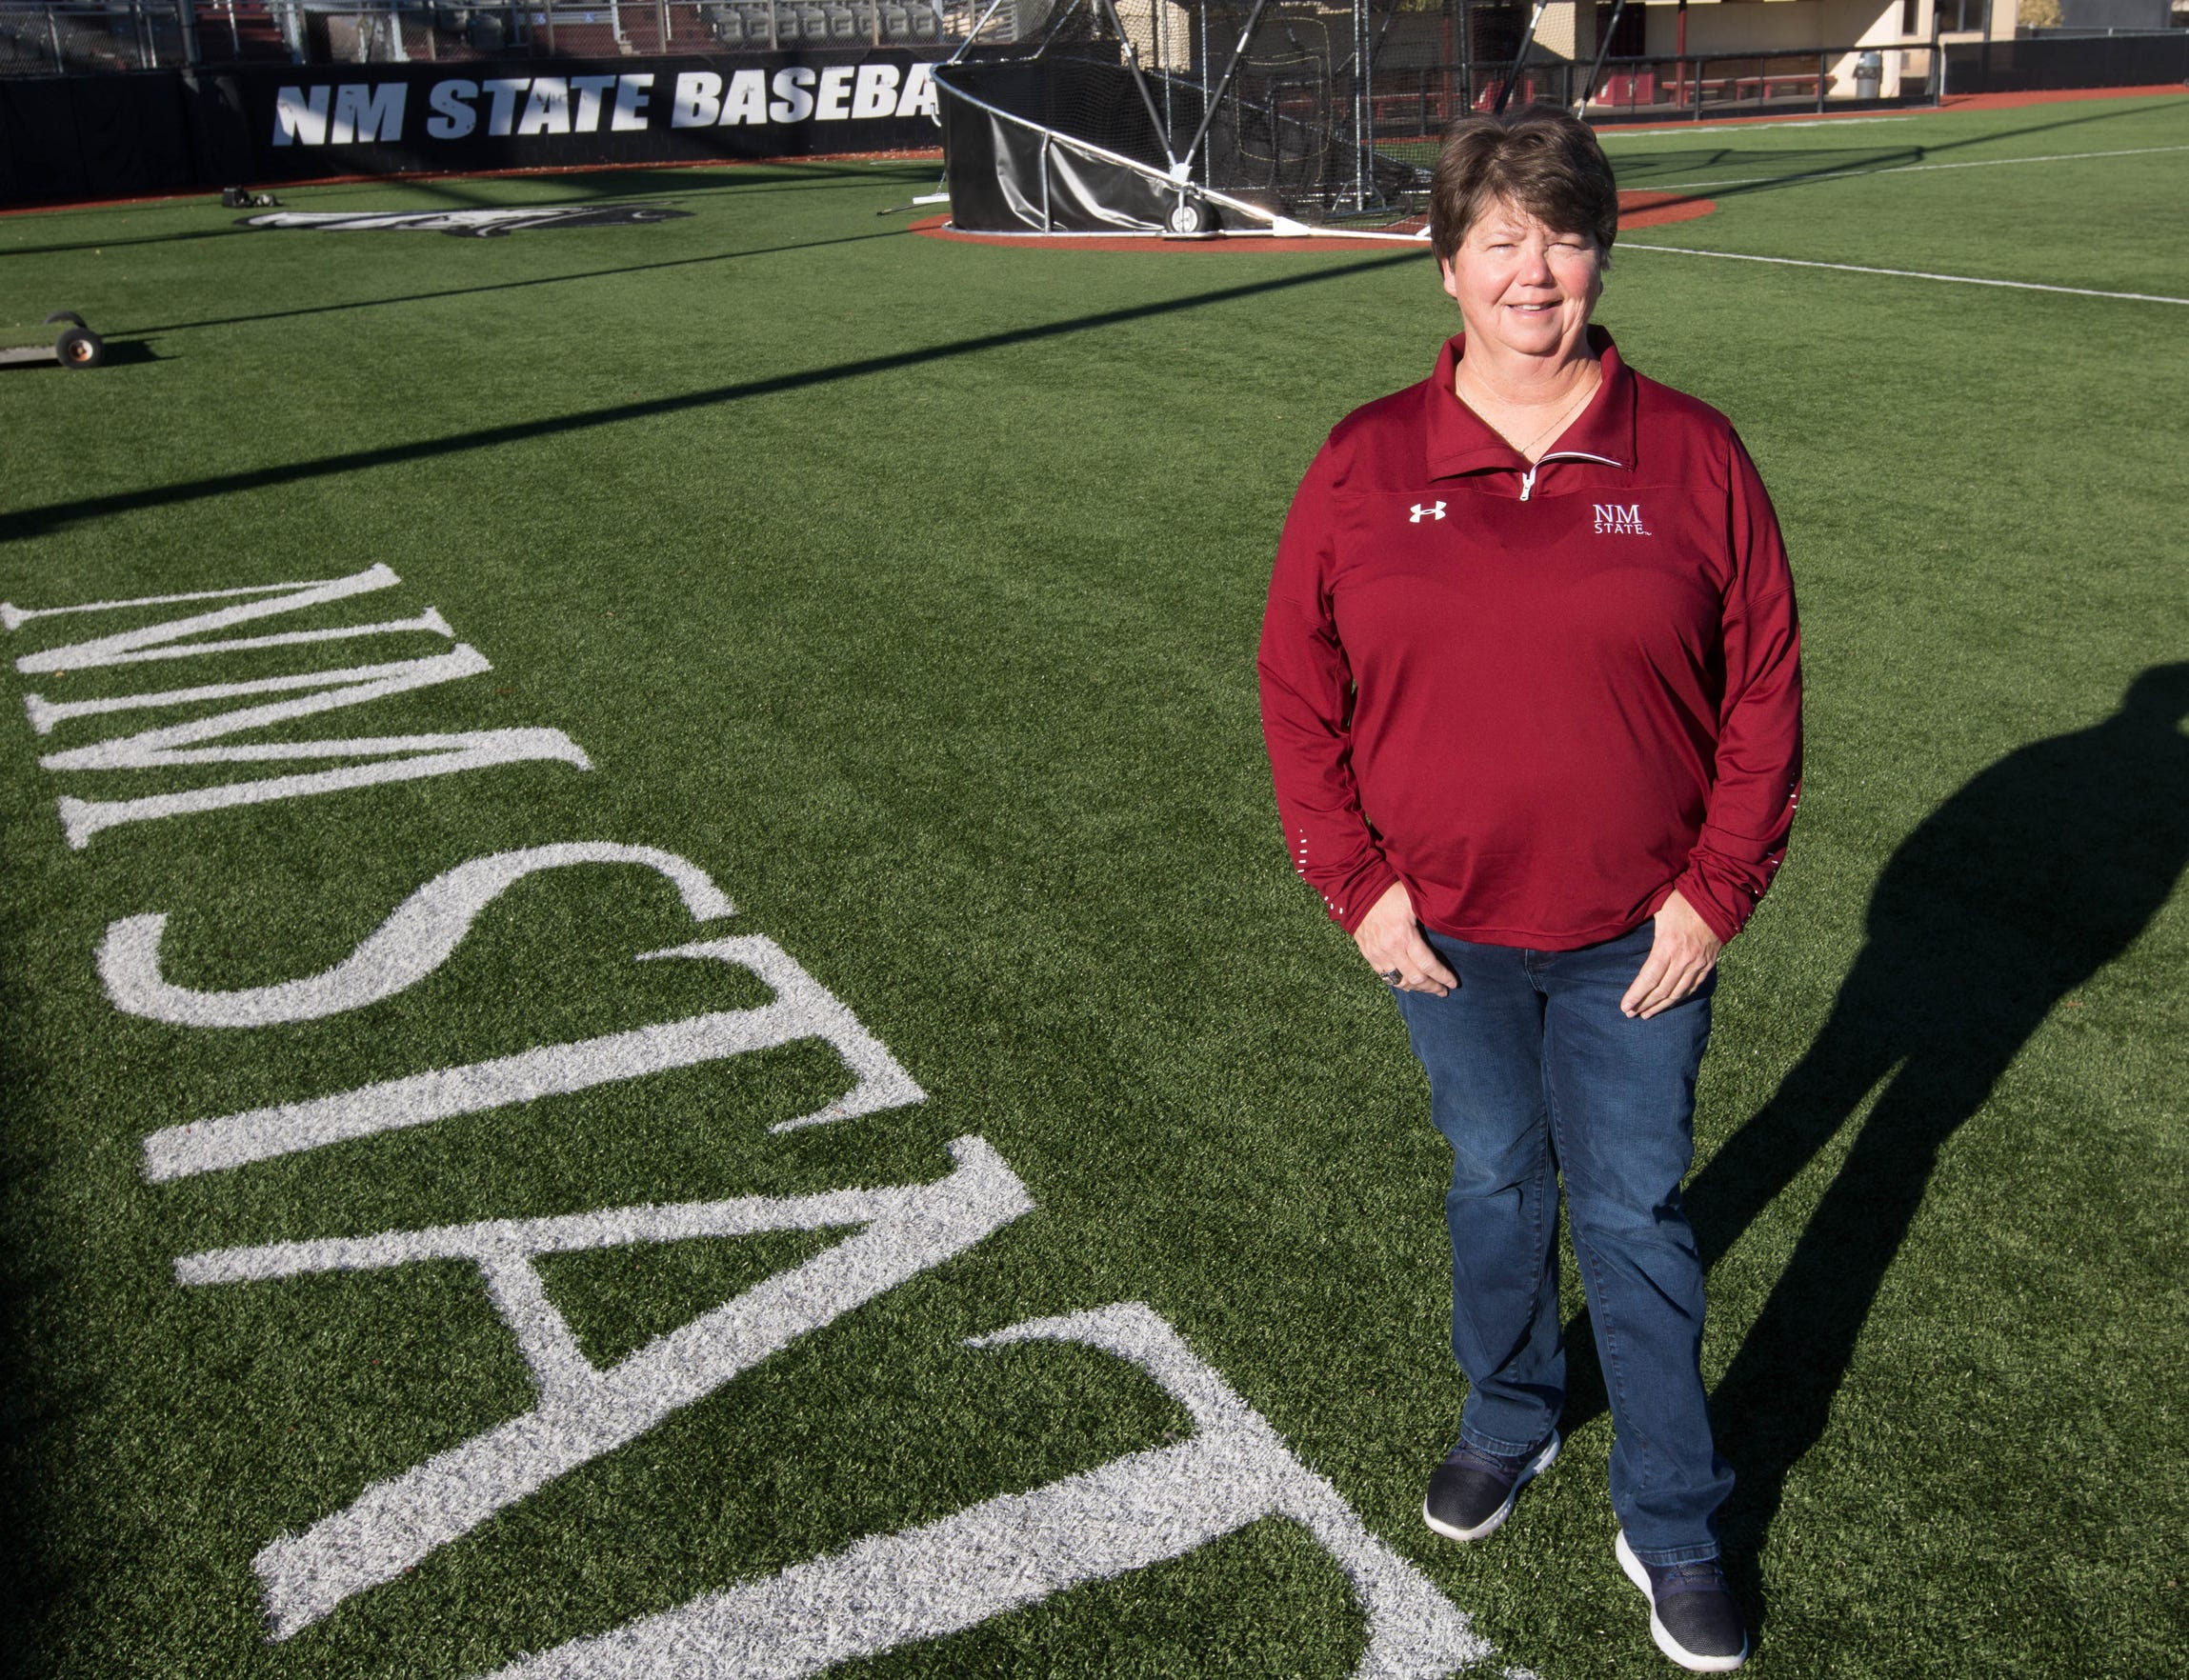 NMSU softball coach Kathy Rodolph